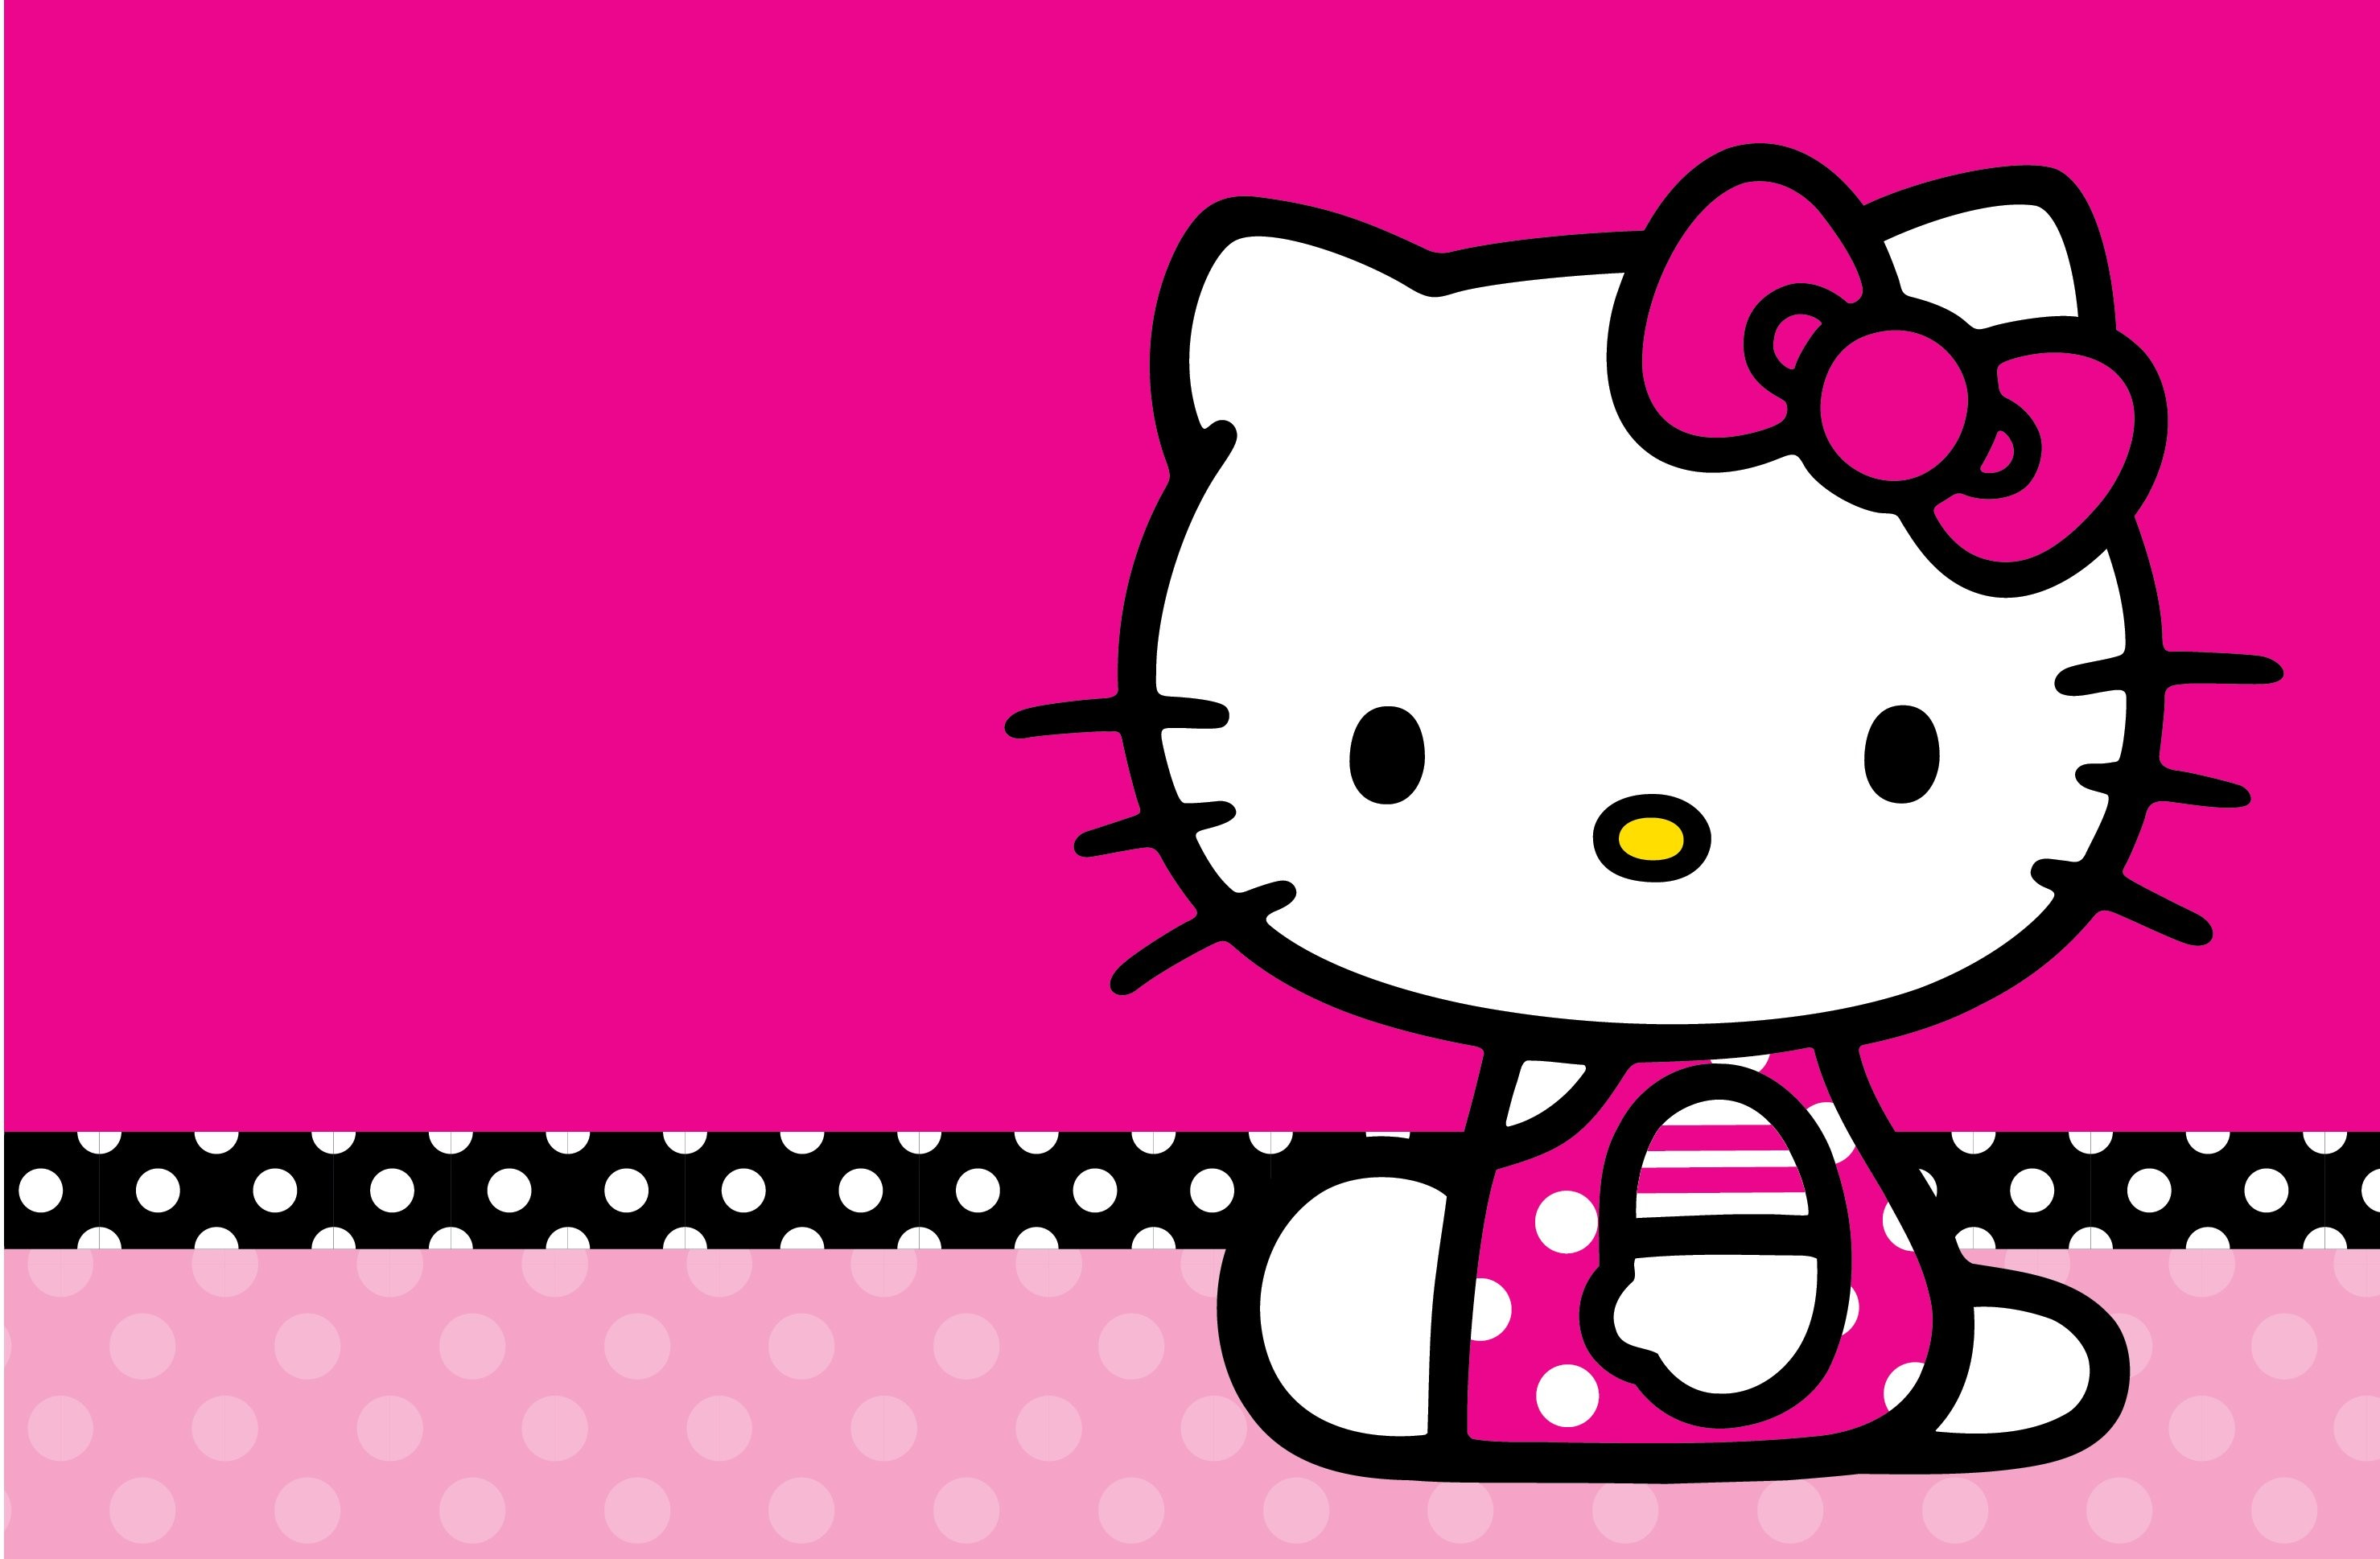 Cute Kitty Wallpapers Download Hello Kitty Screensavers And Wallpapers 64 Images